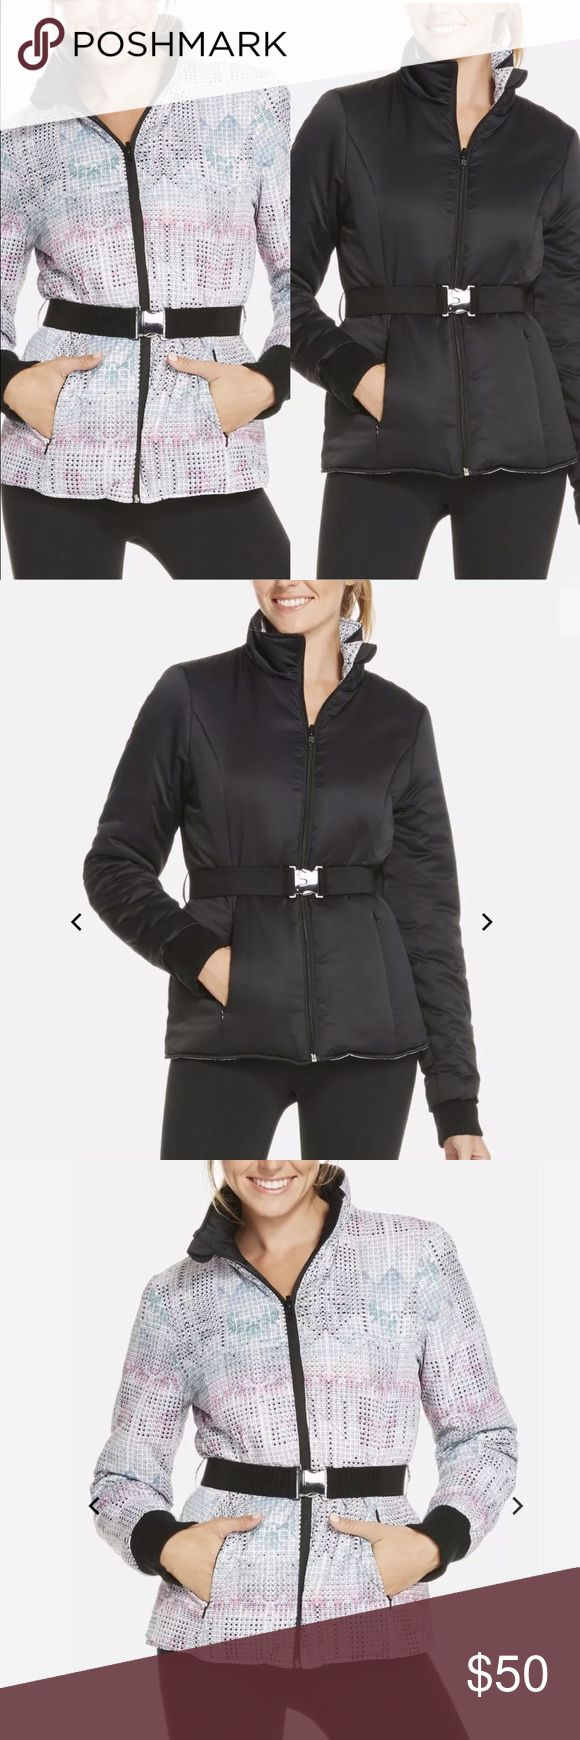 Fabletics reversible puffy puffer jacket Fabletics medusa reversible jacket•removable belt• This jacket is for the girl who loves her apres-ski. Hole up by the fireplace in a ski-inspired jacket. Go classic in all black or reverse it for a cool artic print.  Styling: Removable Belt With Metal Buckle Detail, Back Pocket On Sleeve For Key Or Card, Ribbed Cuffs, Invisible Zippers On Princess Seams, Reversible Styling, Puffy Fabric  FIT  Fit: Semi-Fitted Body. Runs True To Size.  Length: Hip…